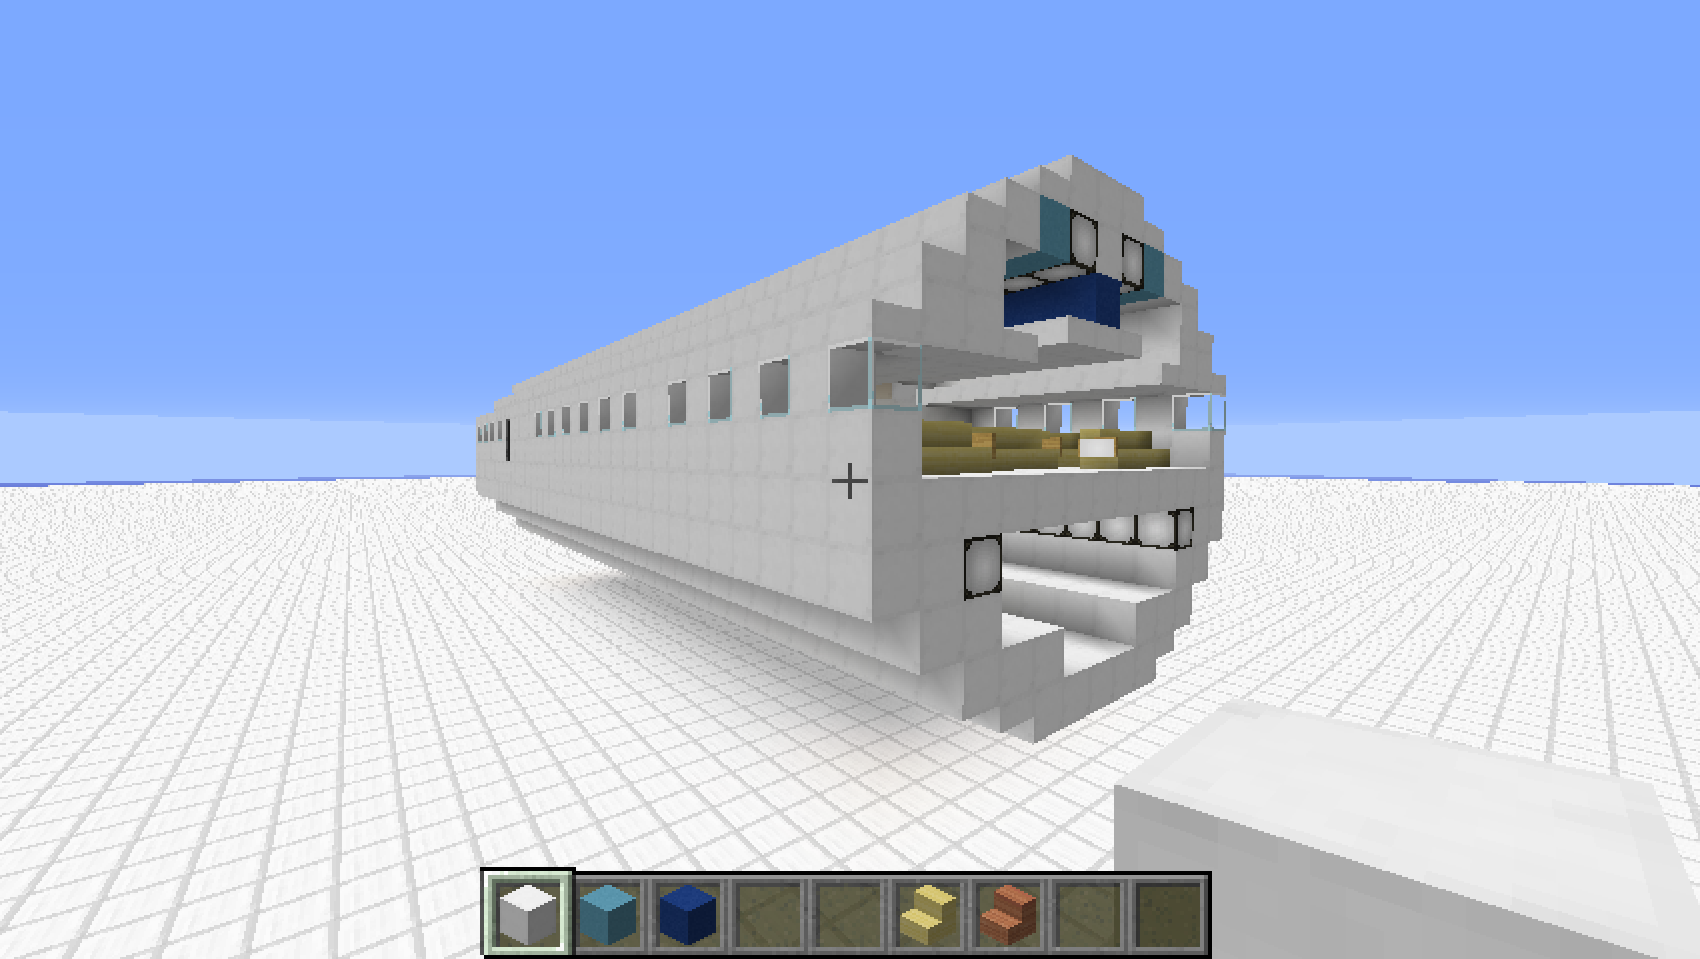 helicopter in minecraft with Minecraft Airplane Tutorial on He162mm in addition Minecraft Airplane Tutorial besides Iron Man Mansion Es Vedra also Lego Juniors The Incredibles 2 Sets Available On Amazon besides MV Princess of the Stars.